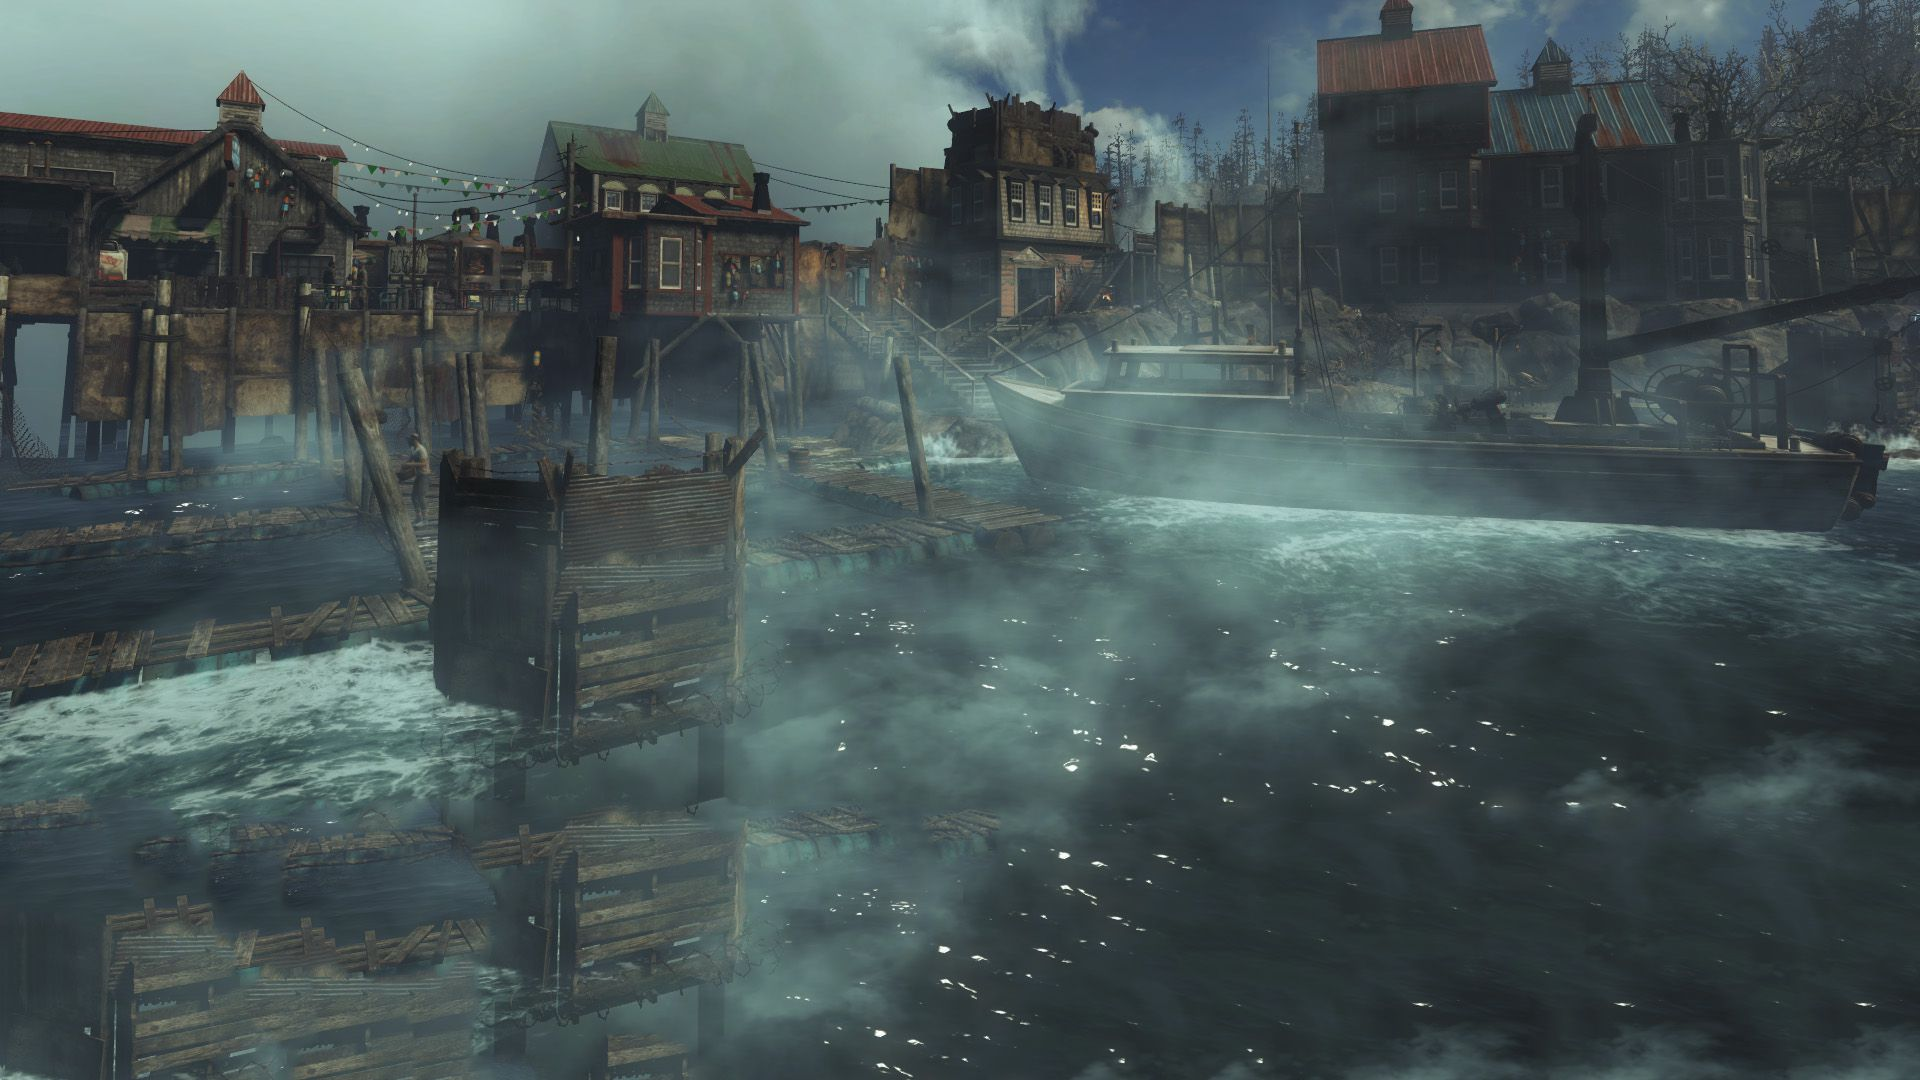 fallout-4-far-harbor-pc-steam-cd-key-satin-al-durmaplay.jpg